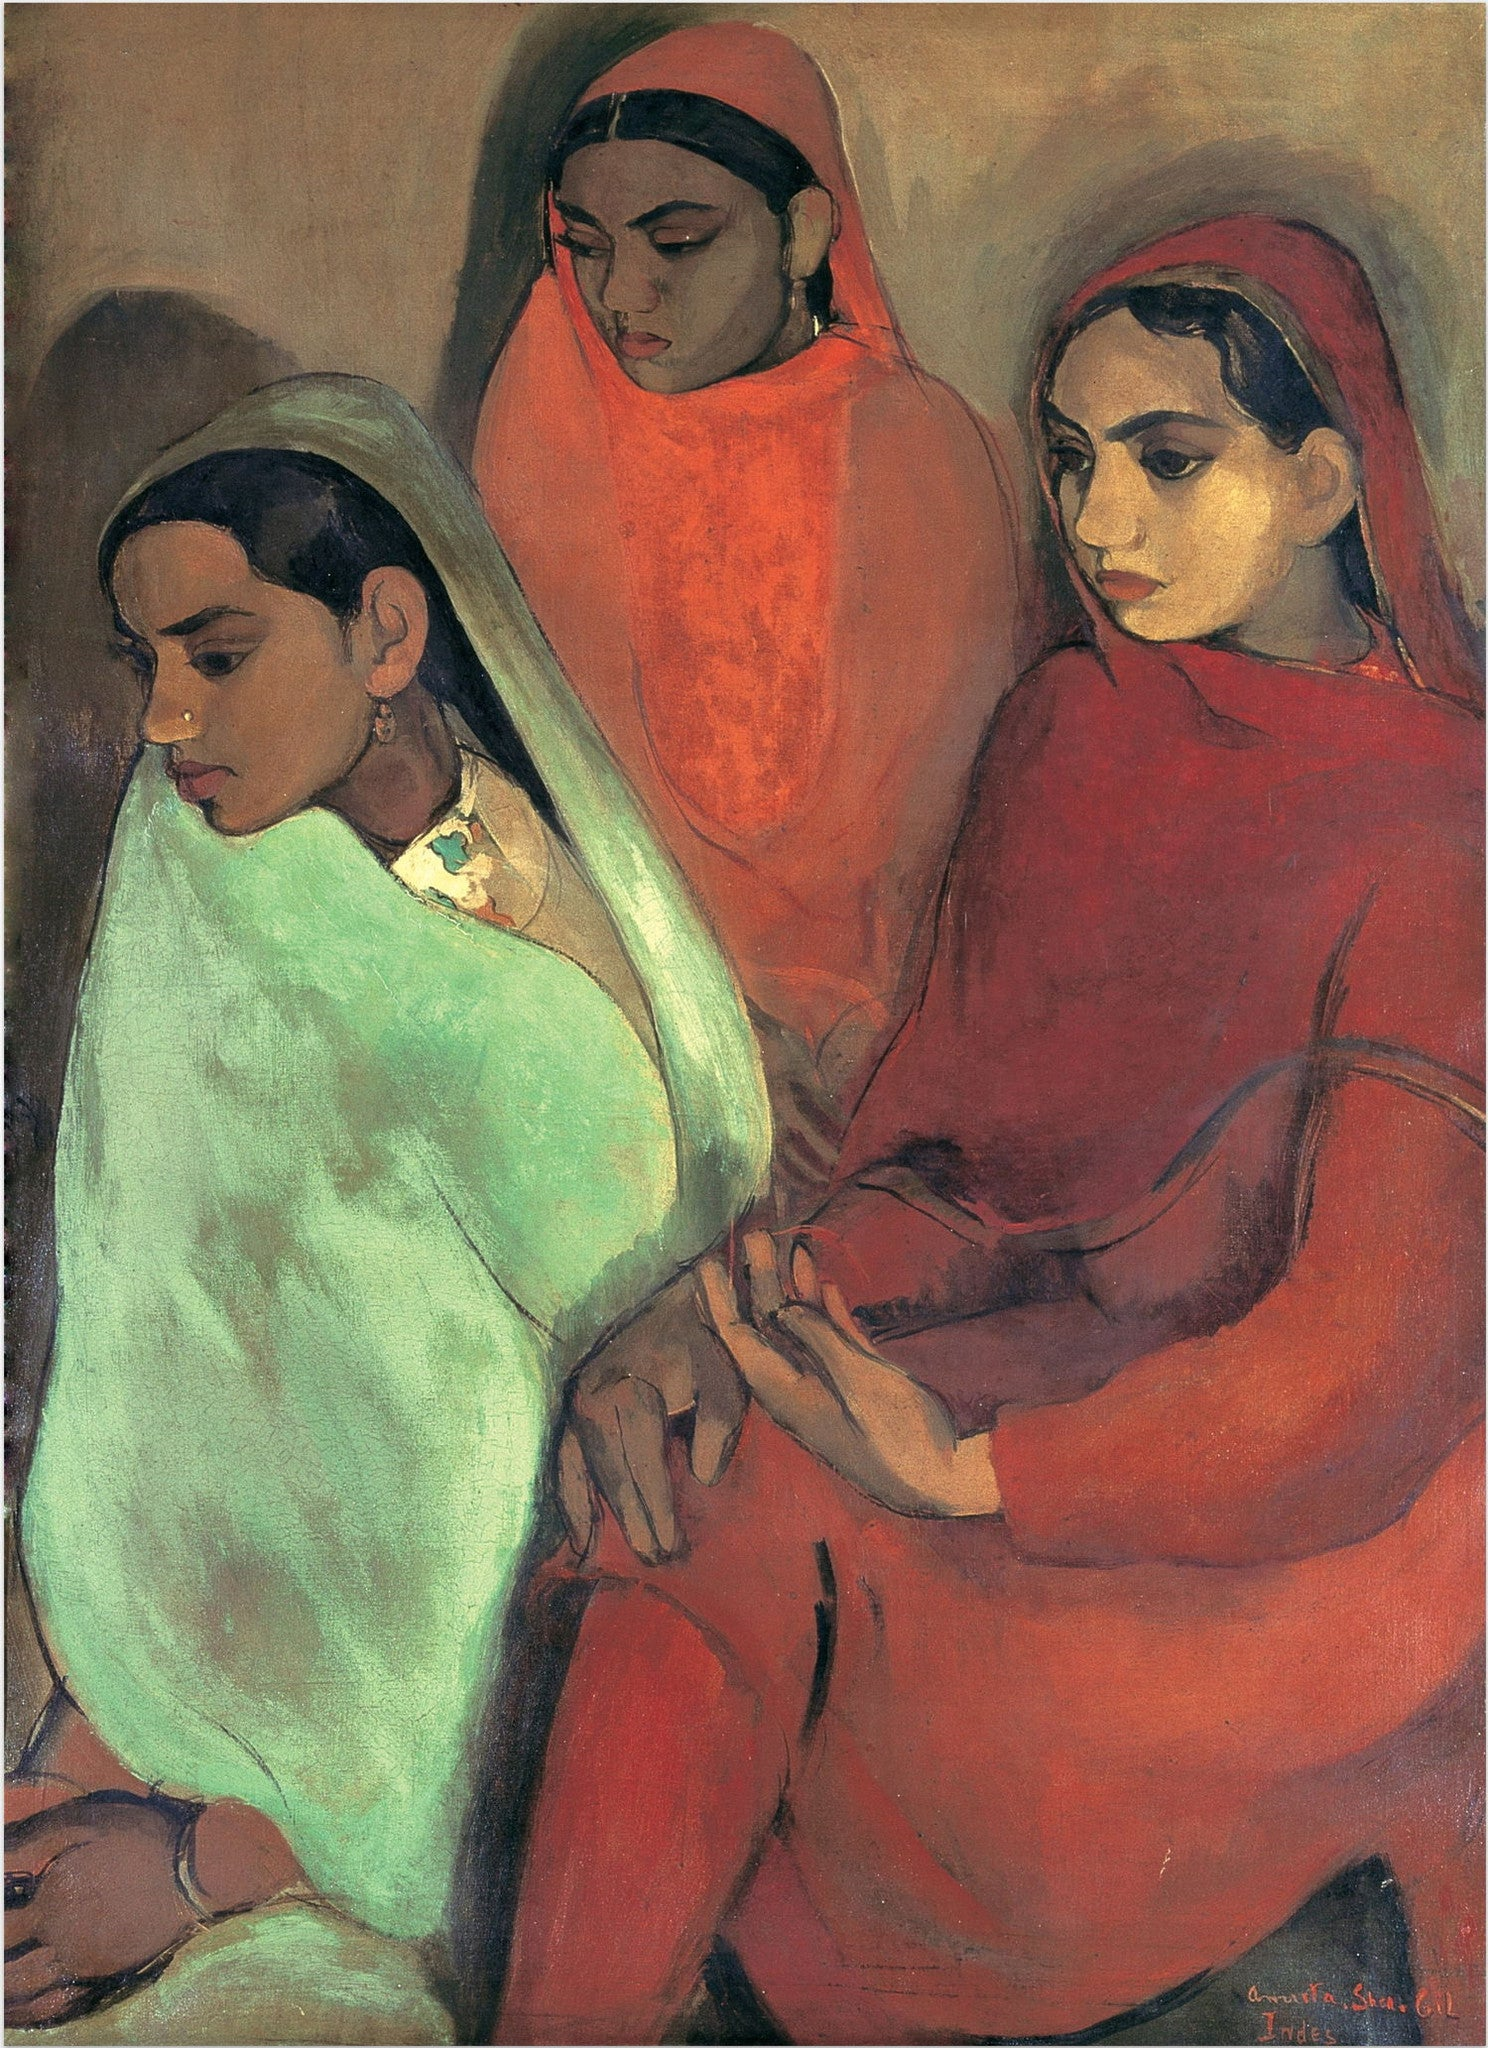 Amrita Sher-Gil Paintings | Buy Posters, Frames, Canvas, Digital Art & Large Size Prints Of The Famous Modern Master's Artworks